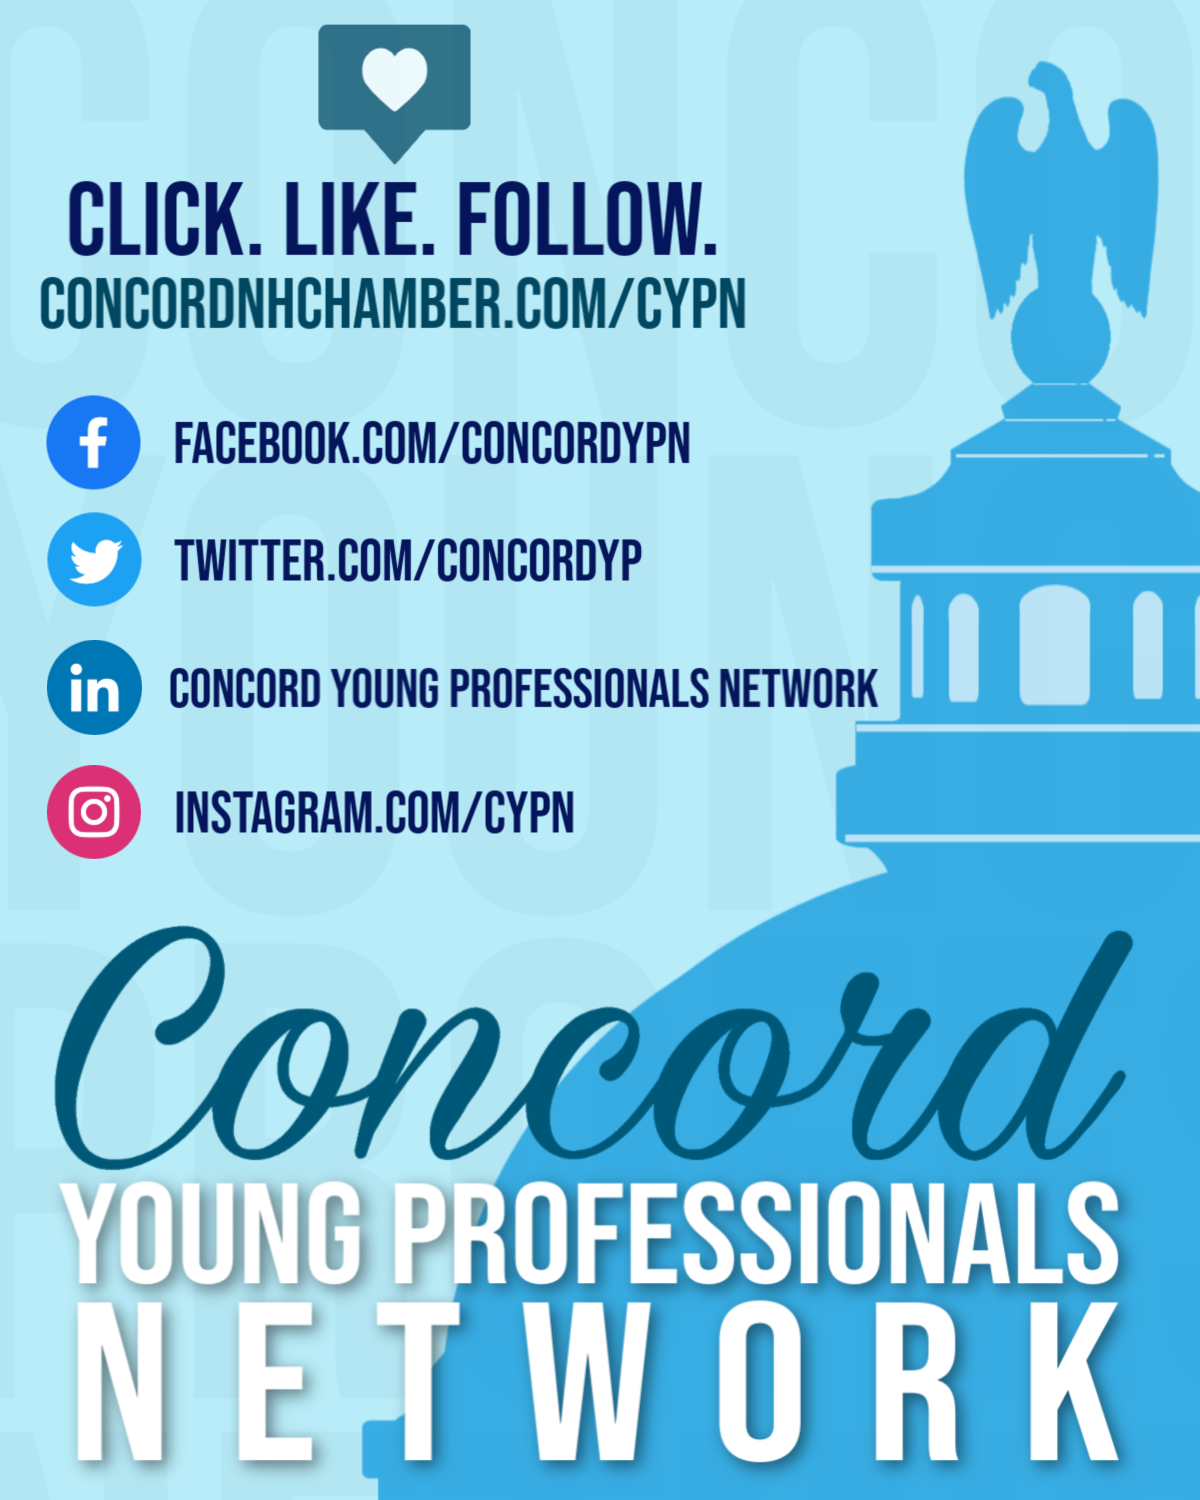 Concord Young Professionals Network (CYPN)